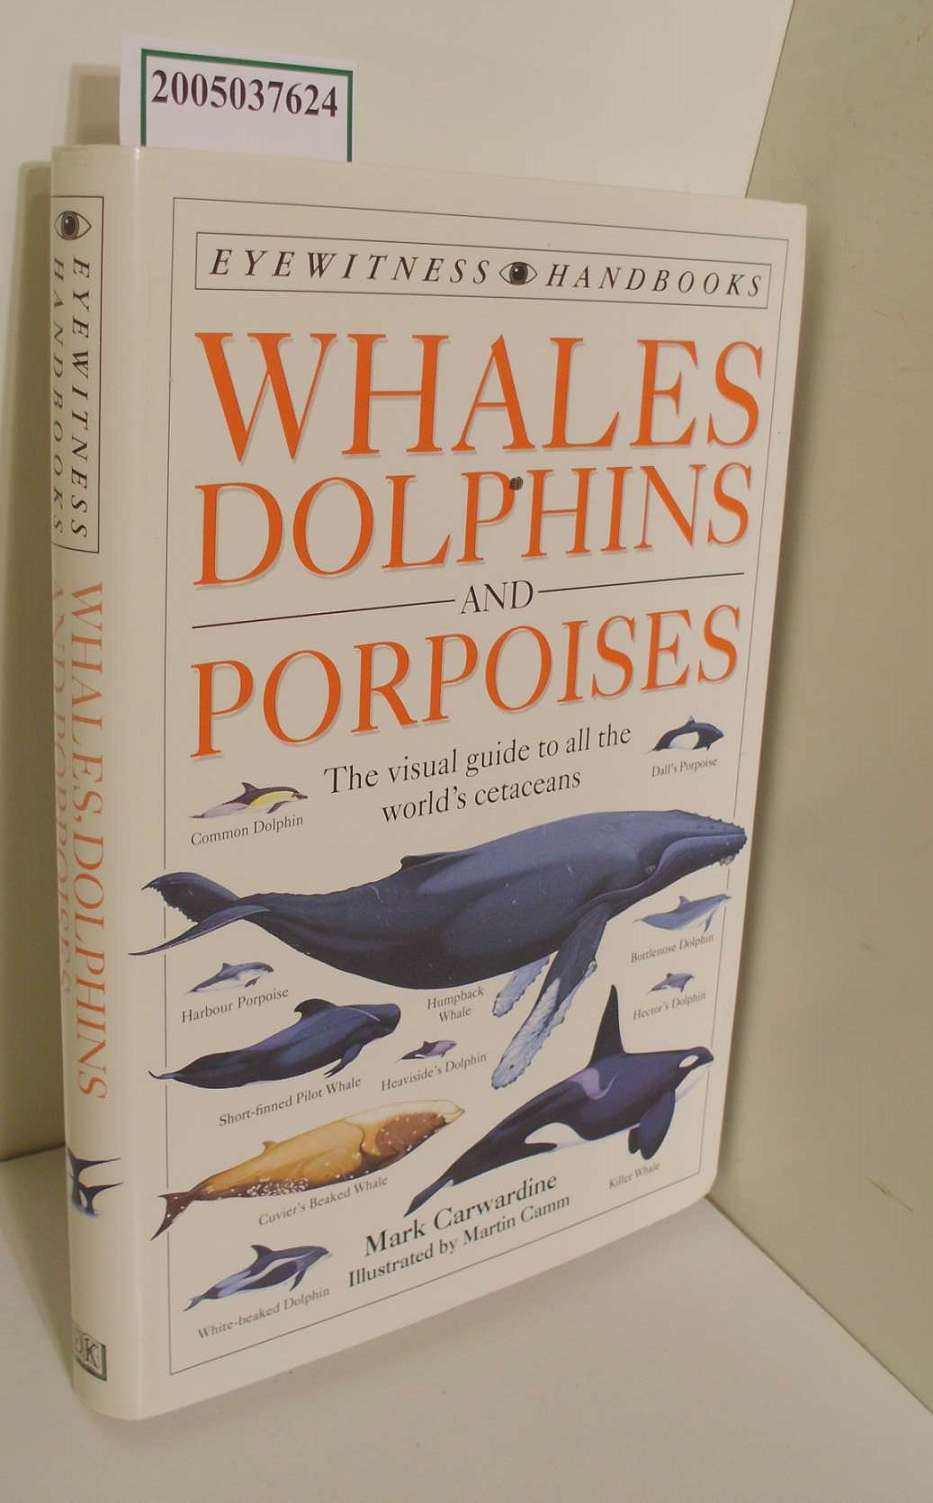 Eyewitness Handbook:  Whales Dolphins & Porpoises / The visual guide to all the world